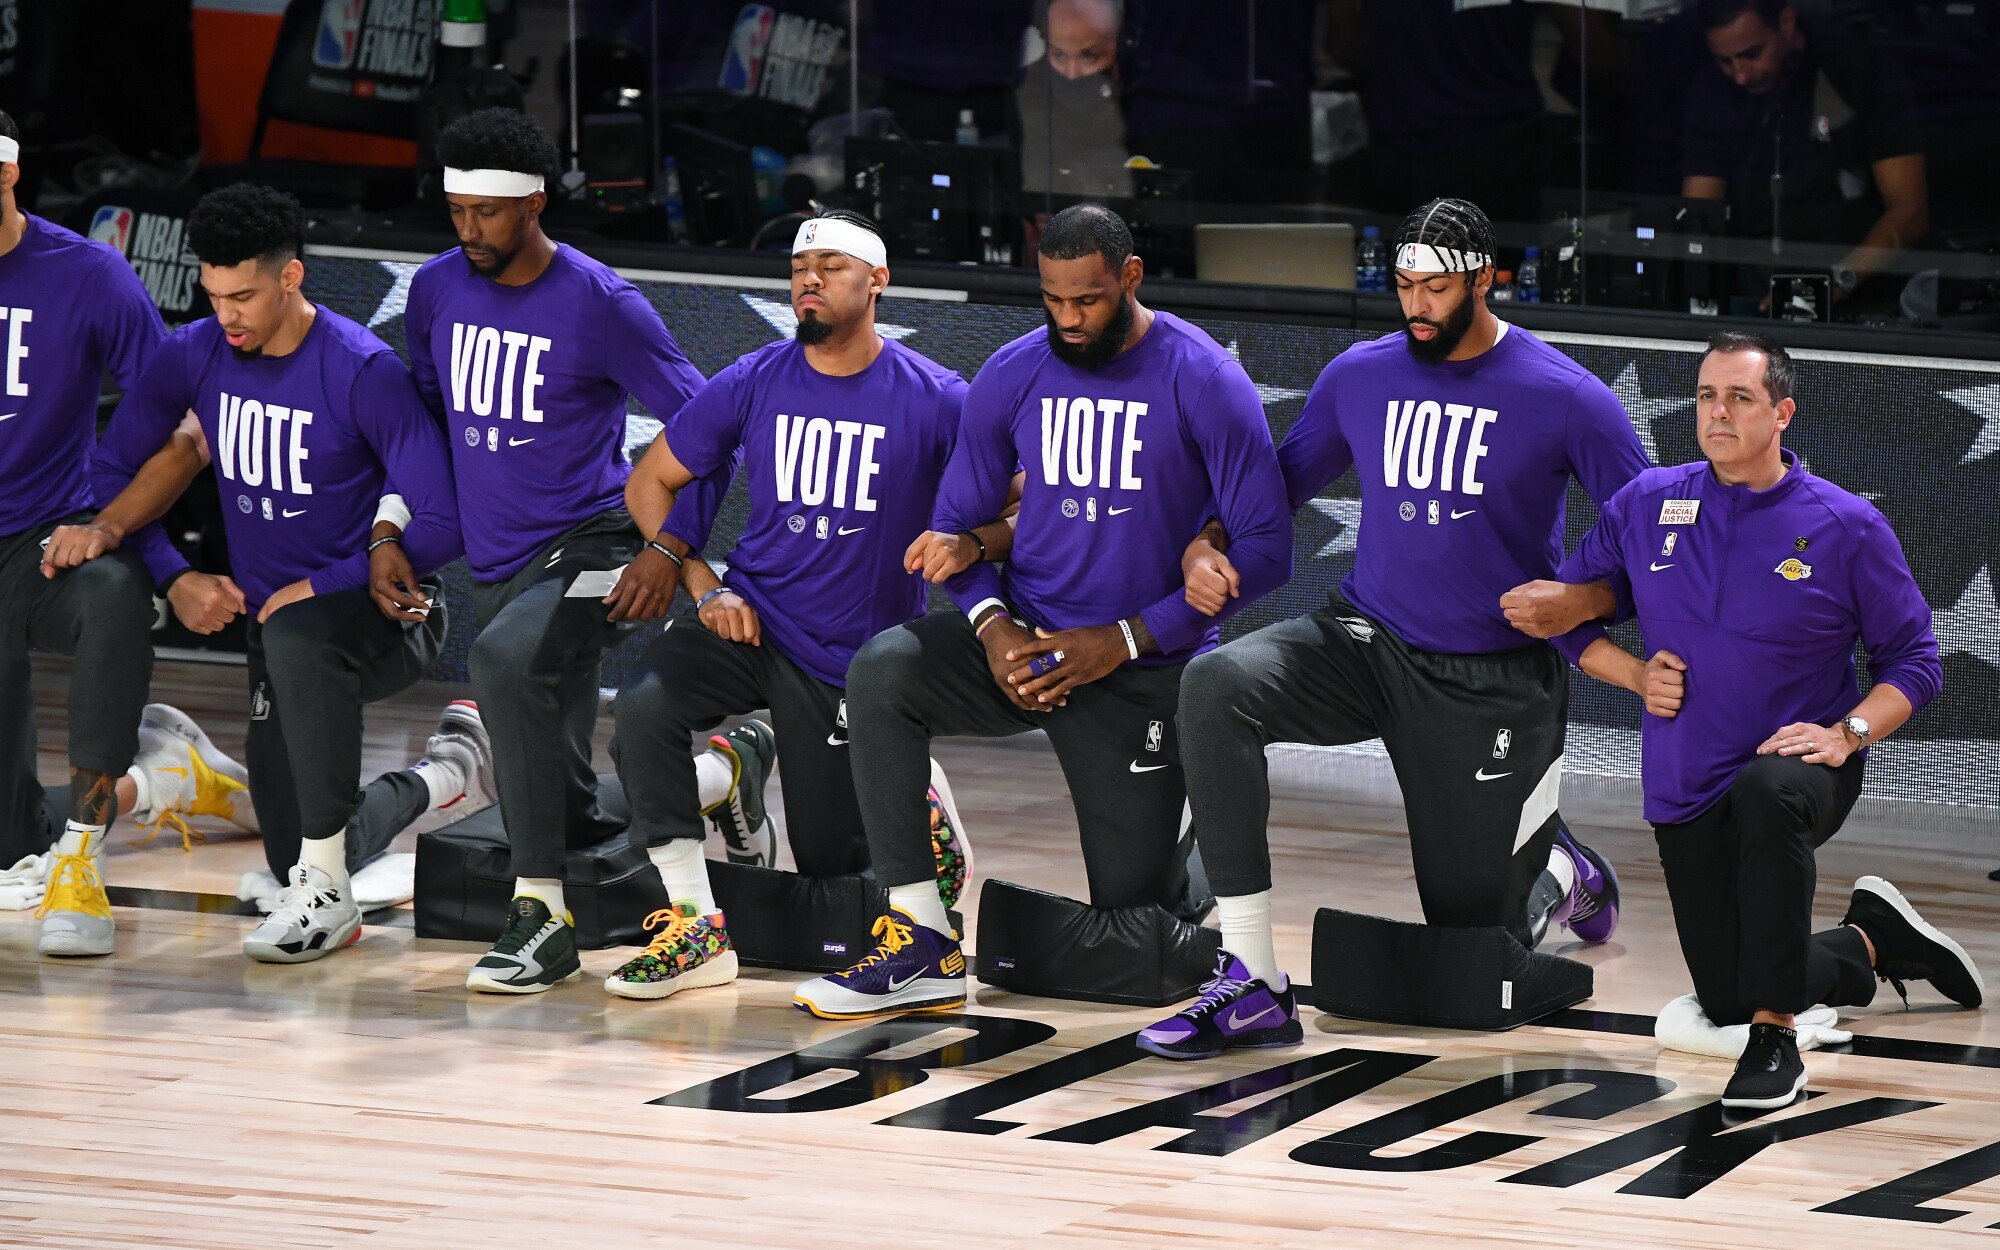 Lebron James And Lakers Take Lead In Nba Activism For Social Justice Los Angeles Times